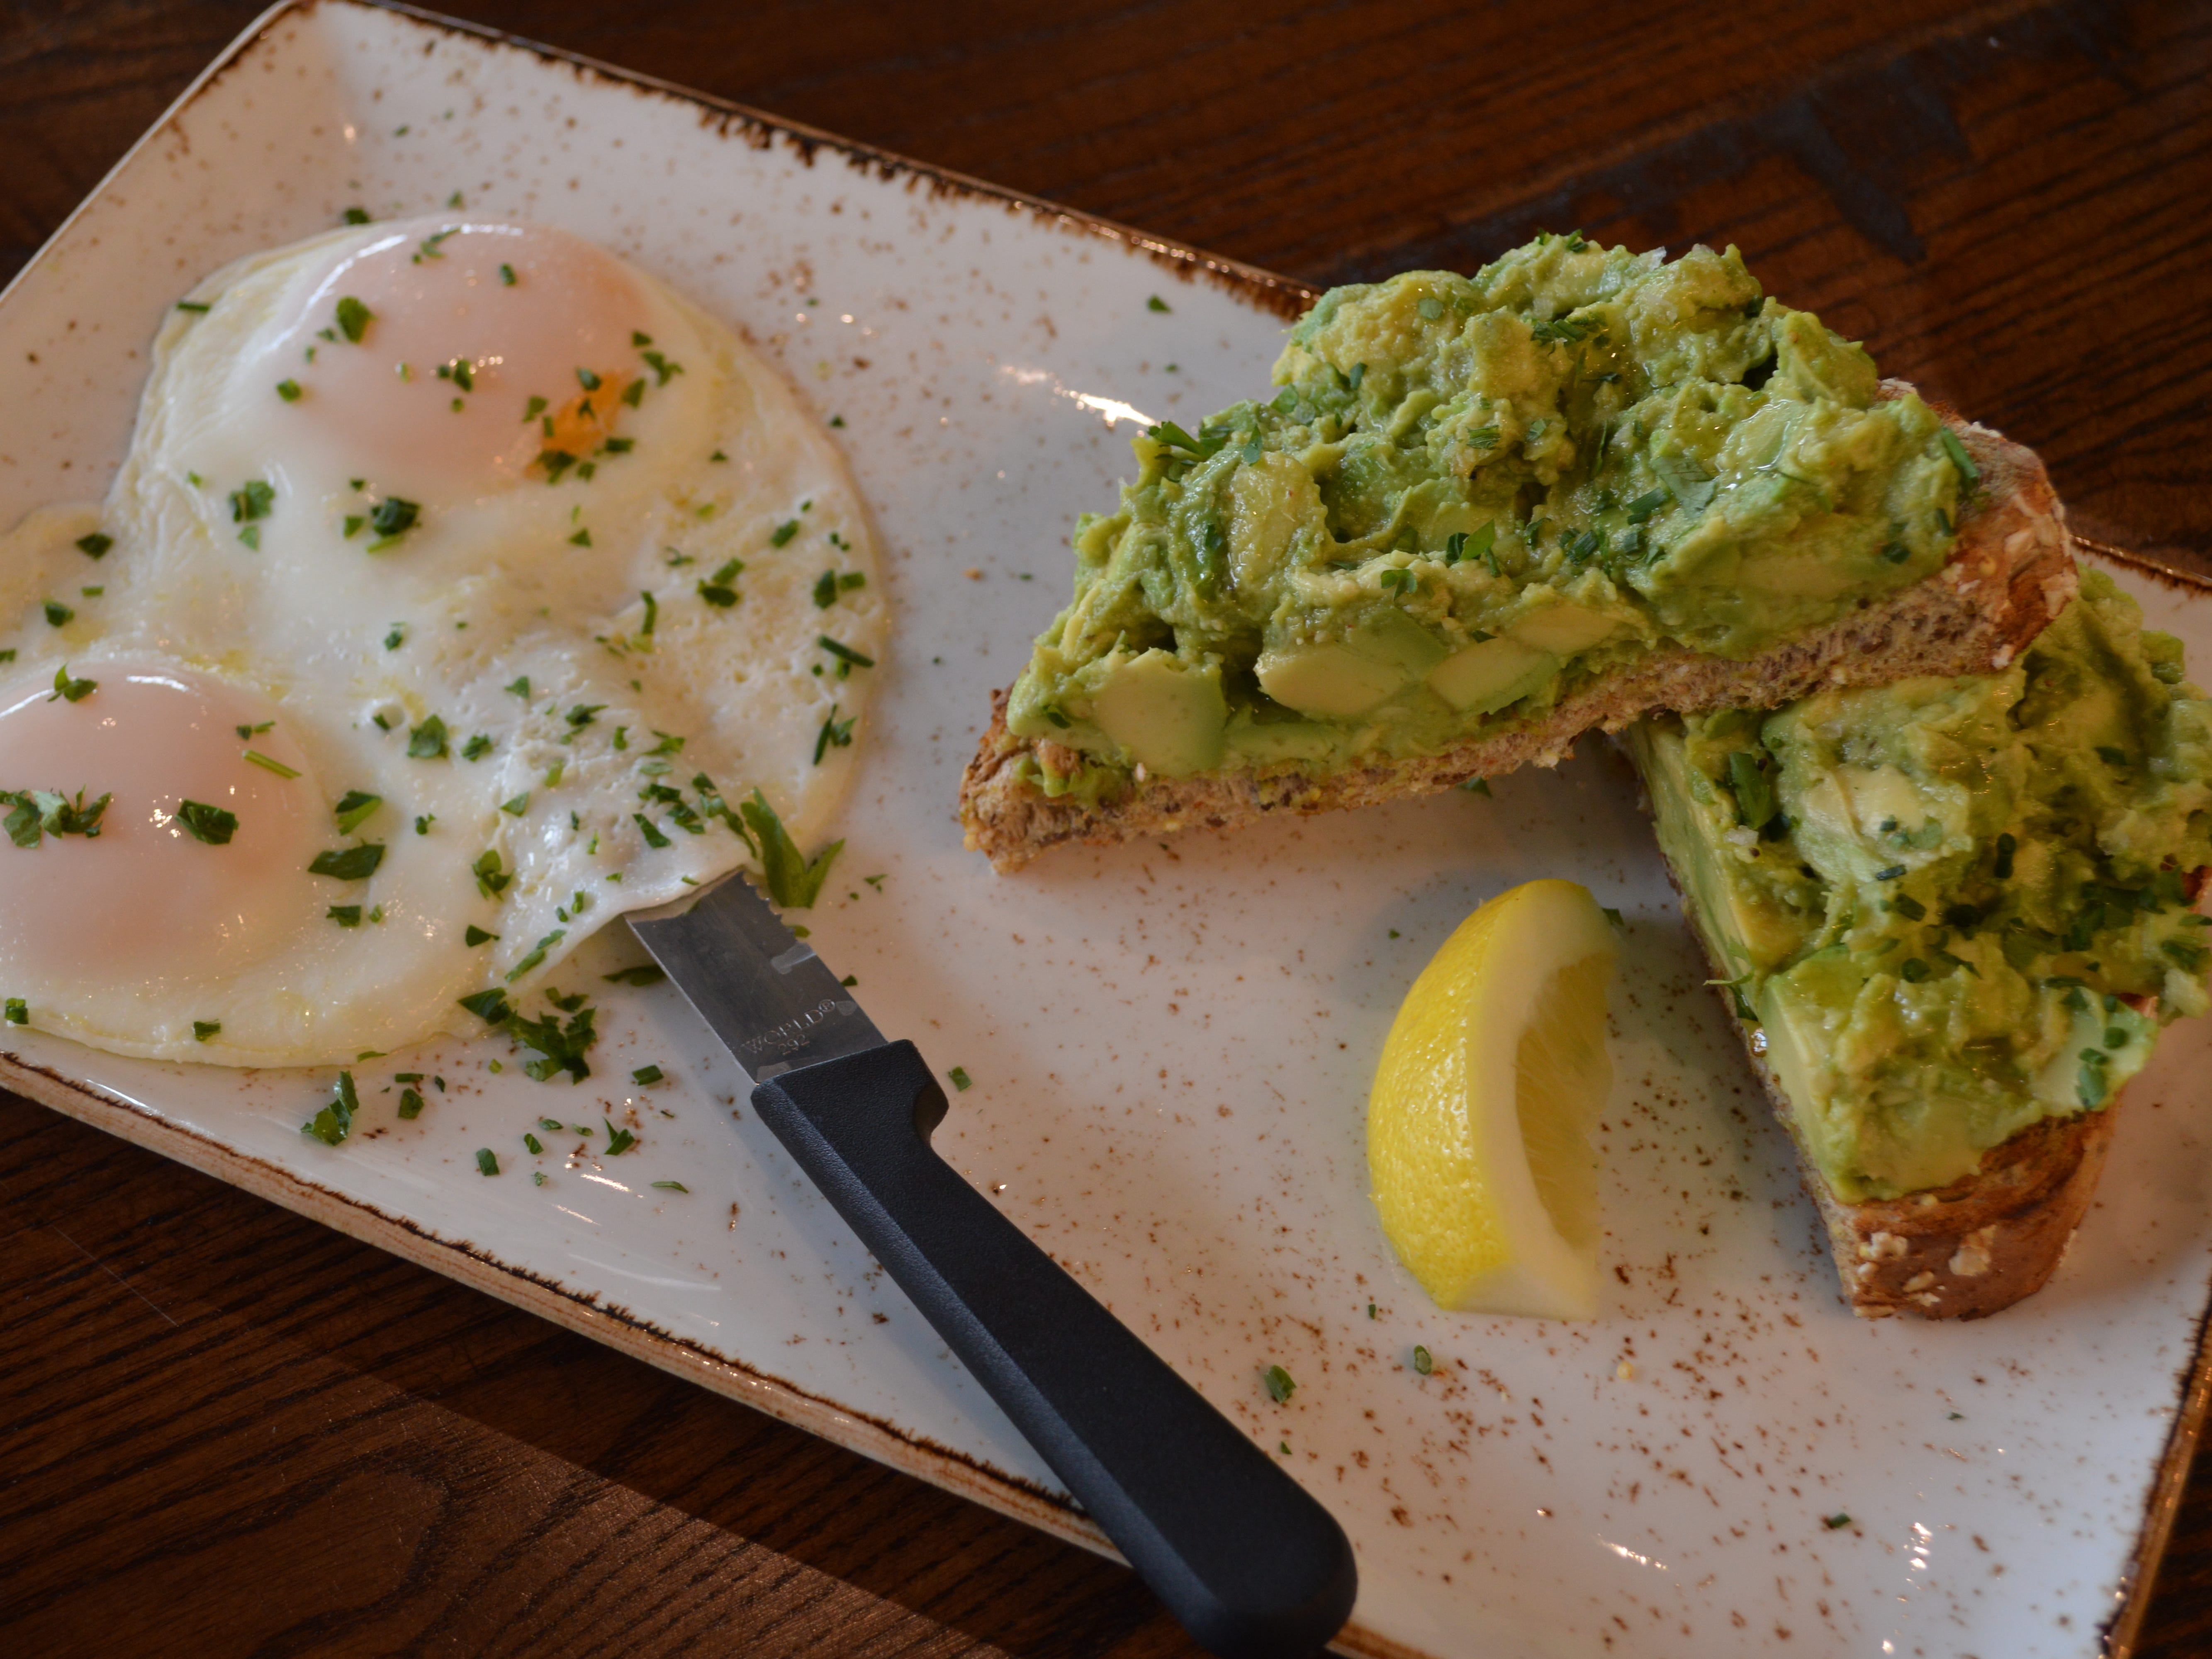 Avocado toast is served with two basted eggs for $10.29.